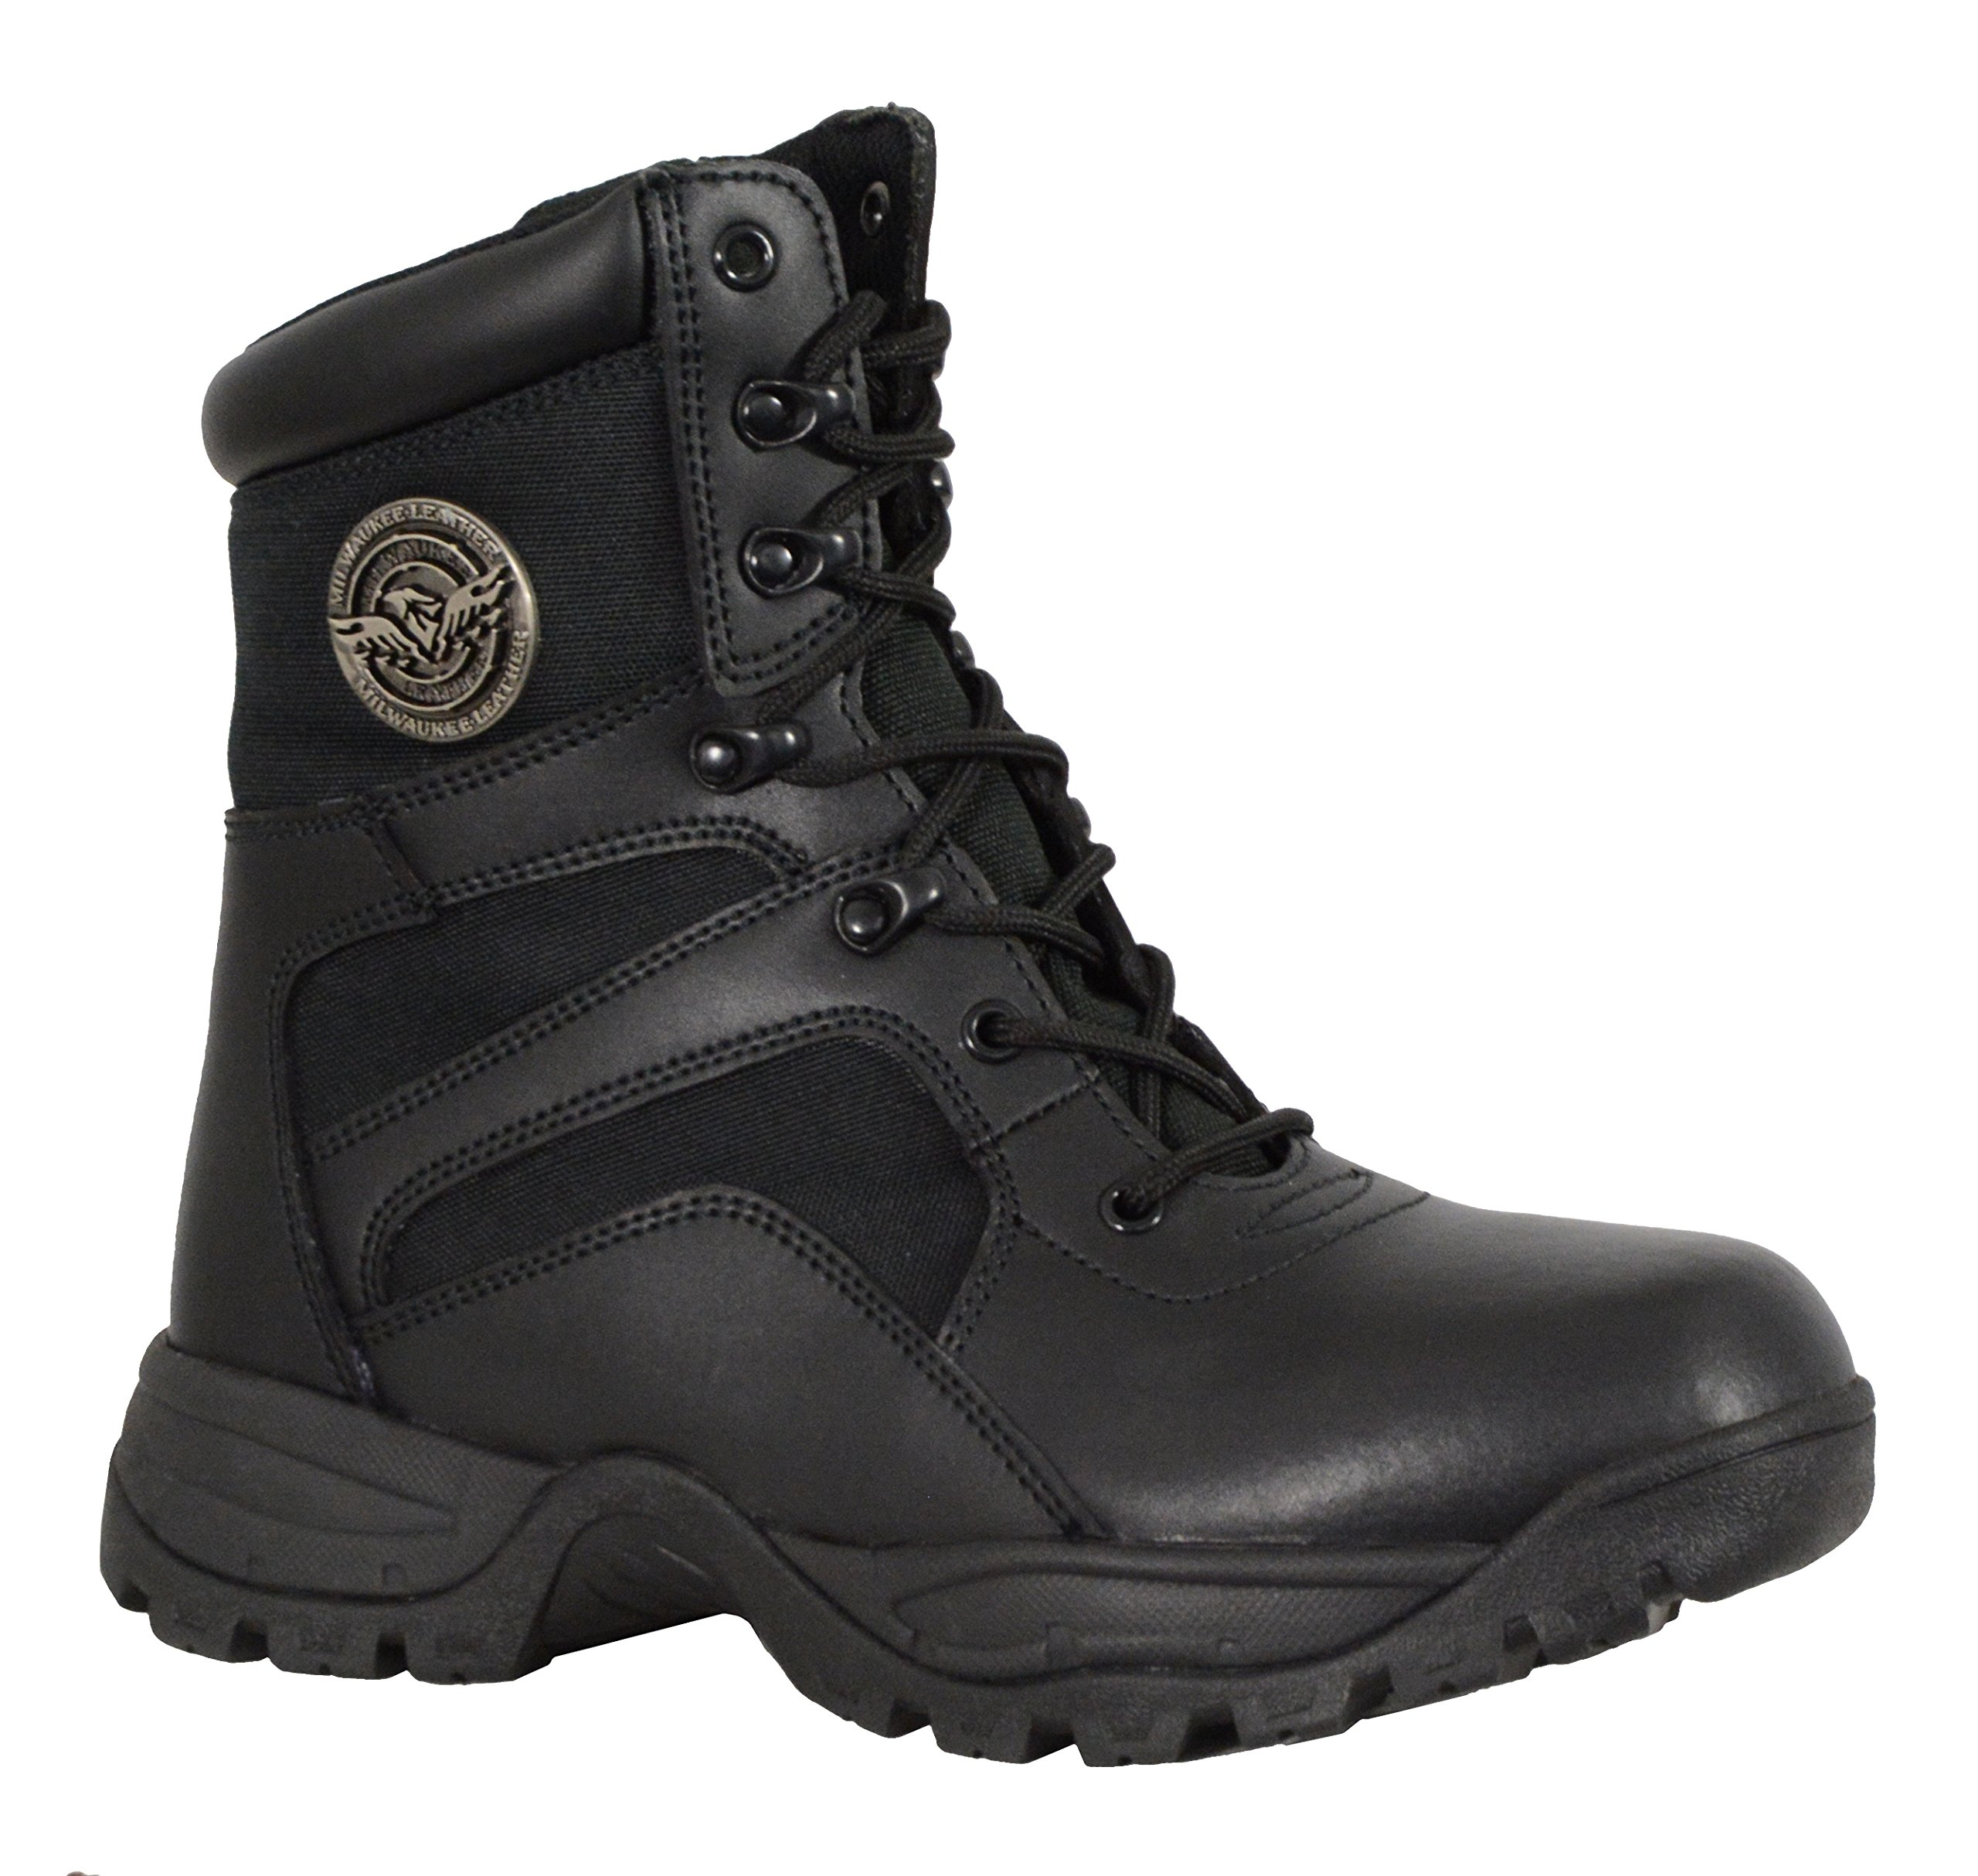 Milwaukee Performance Men's Leather Lace to Toe Tactical Boots (Black, Size 11)